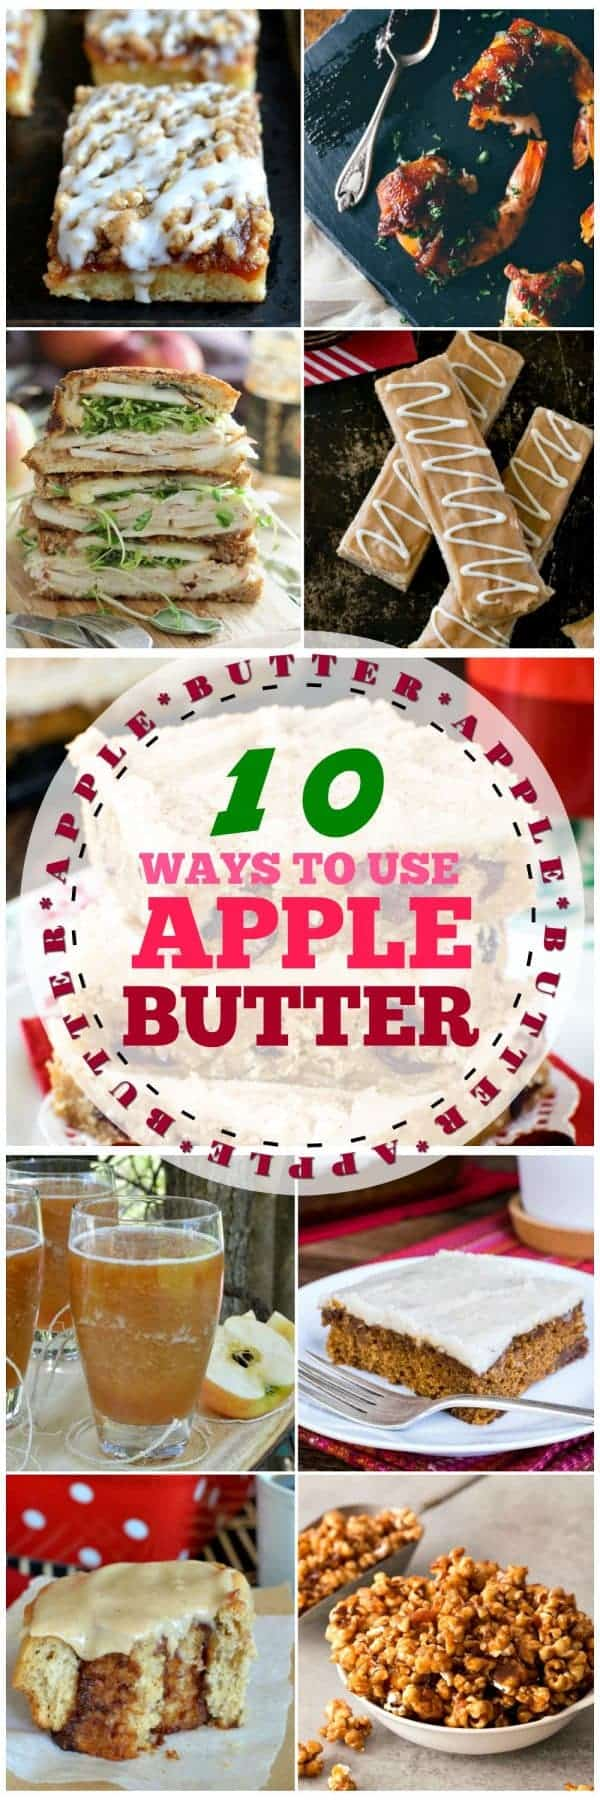 A collage of photos showing how to use apple butter